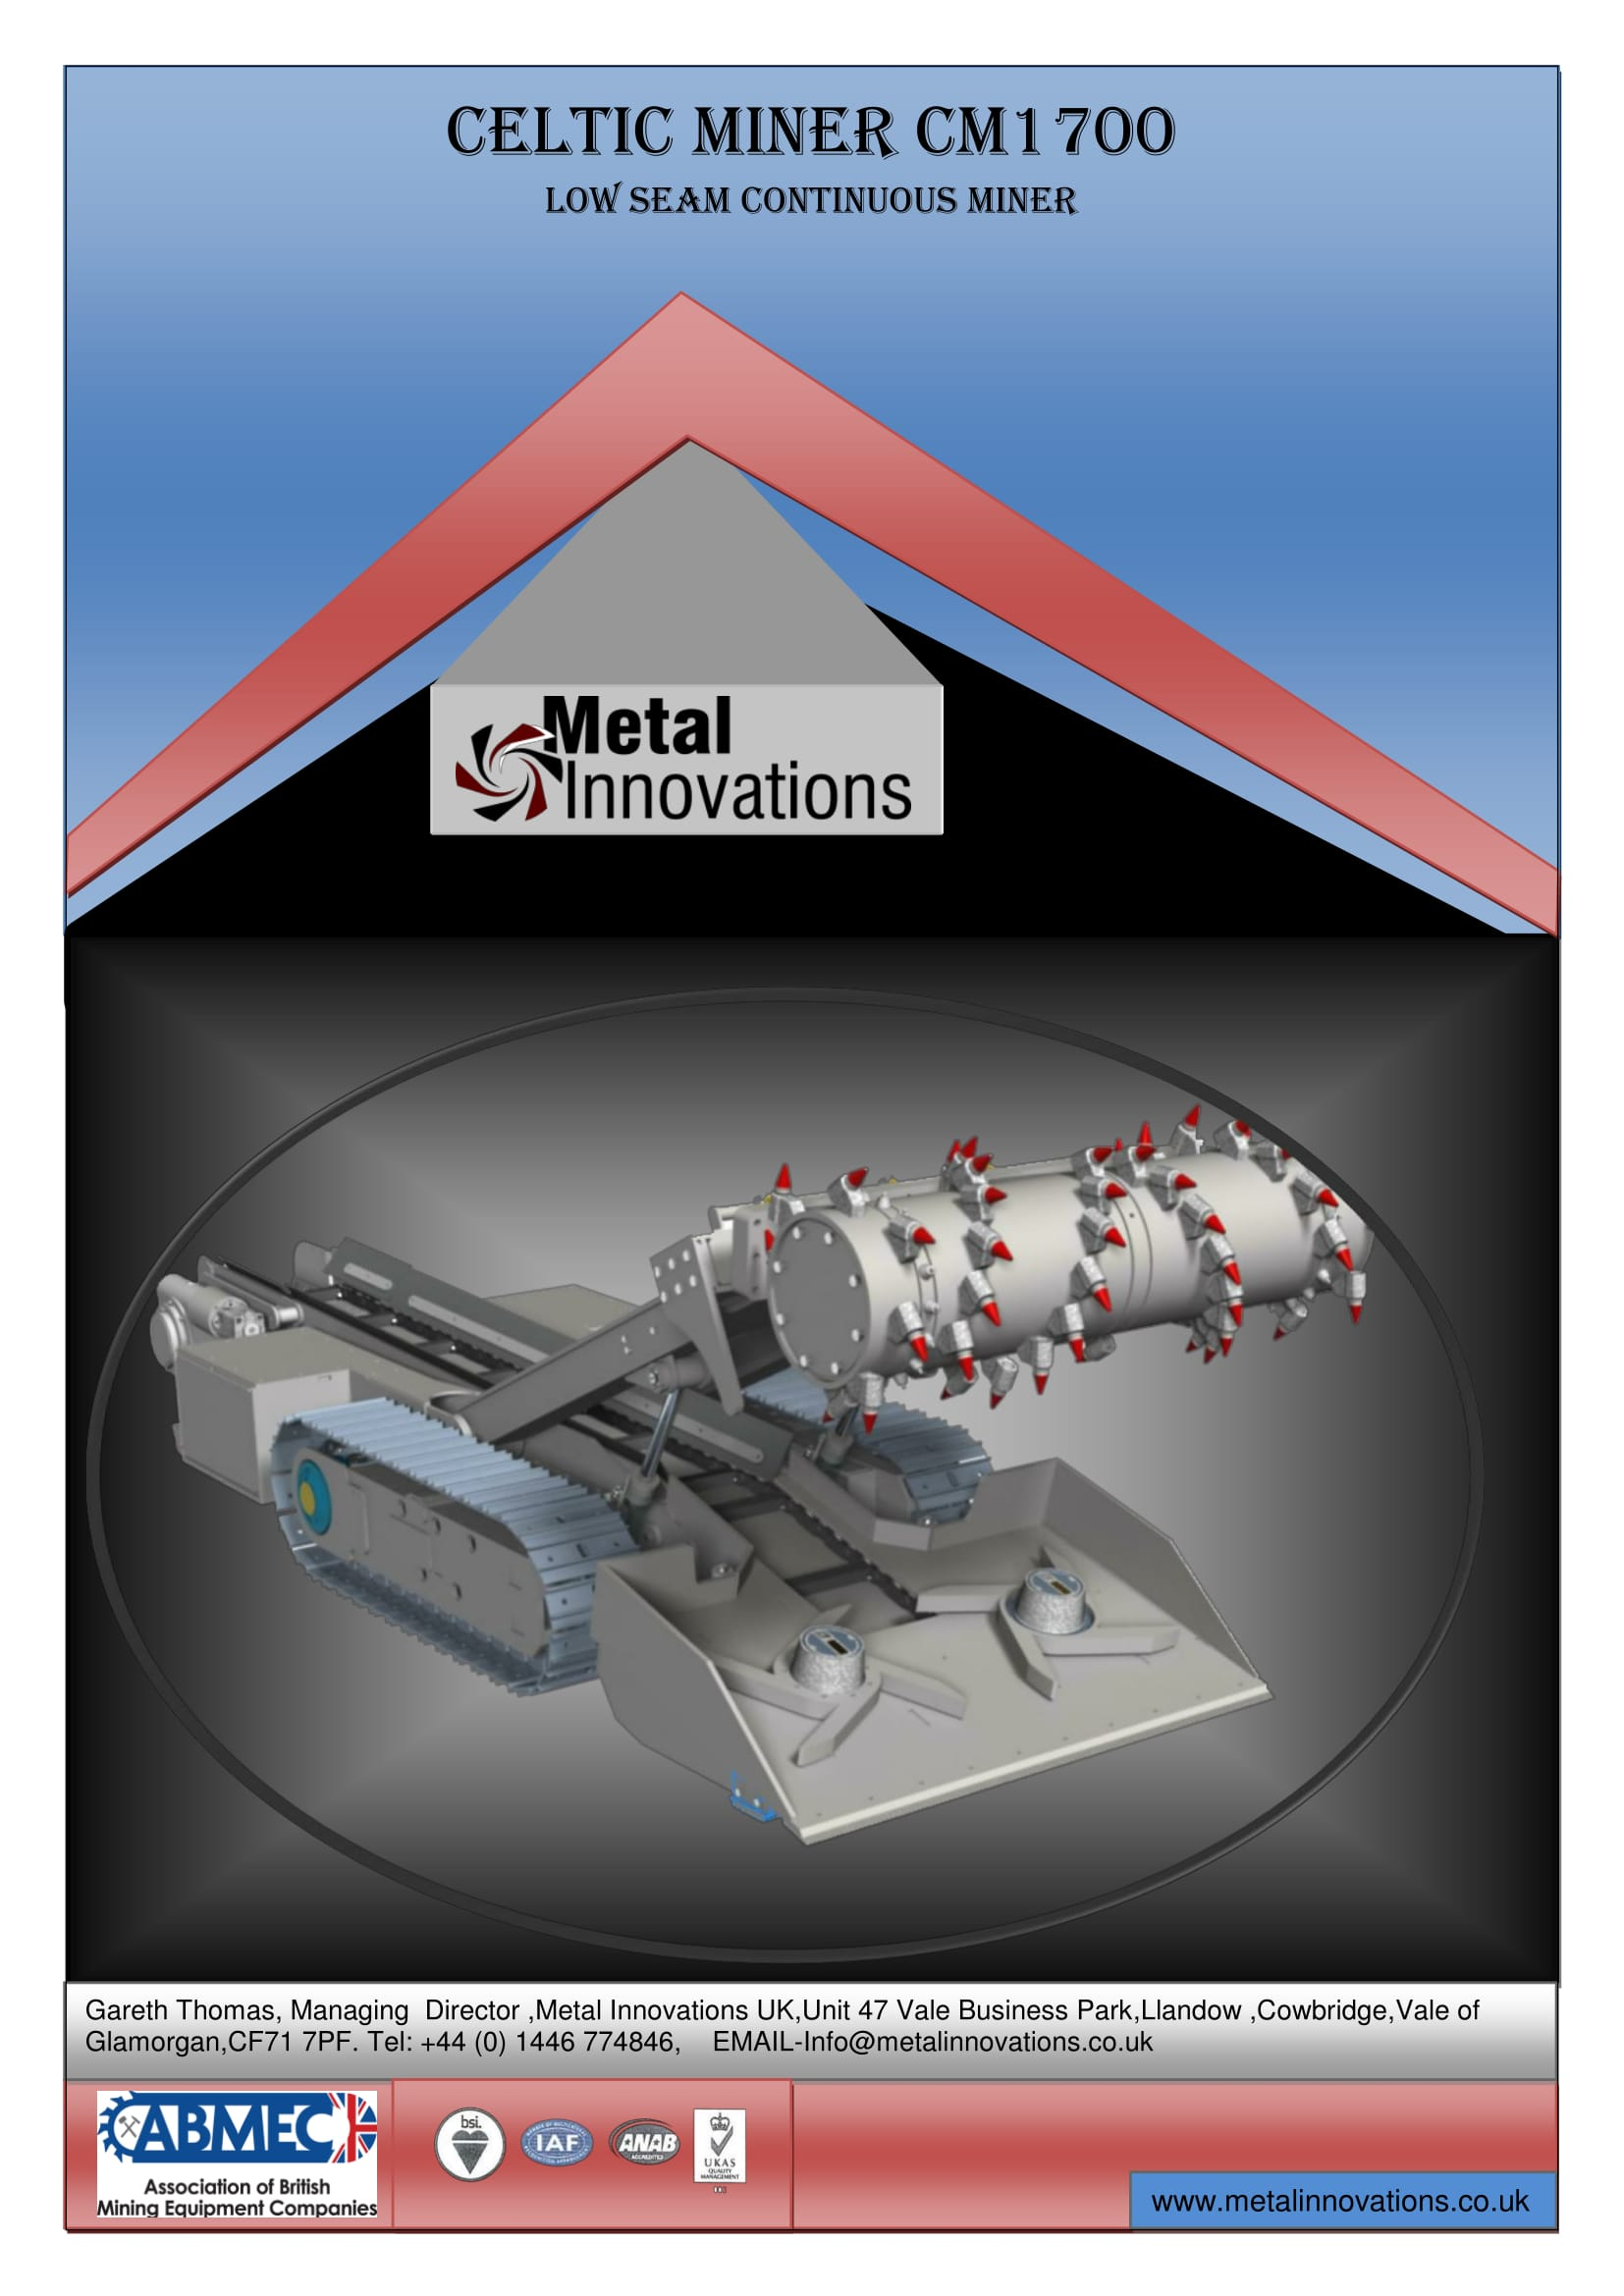 CM1700 - Metal Innovations - Home of the Celtic Miner